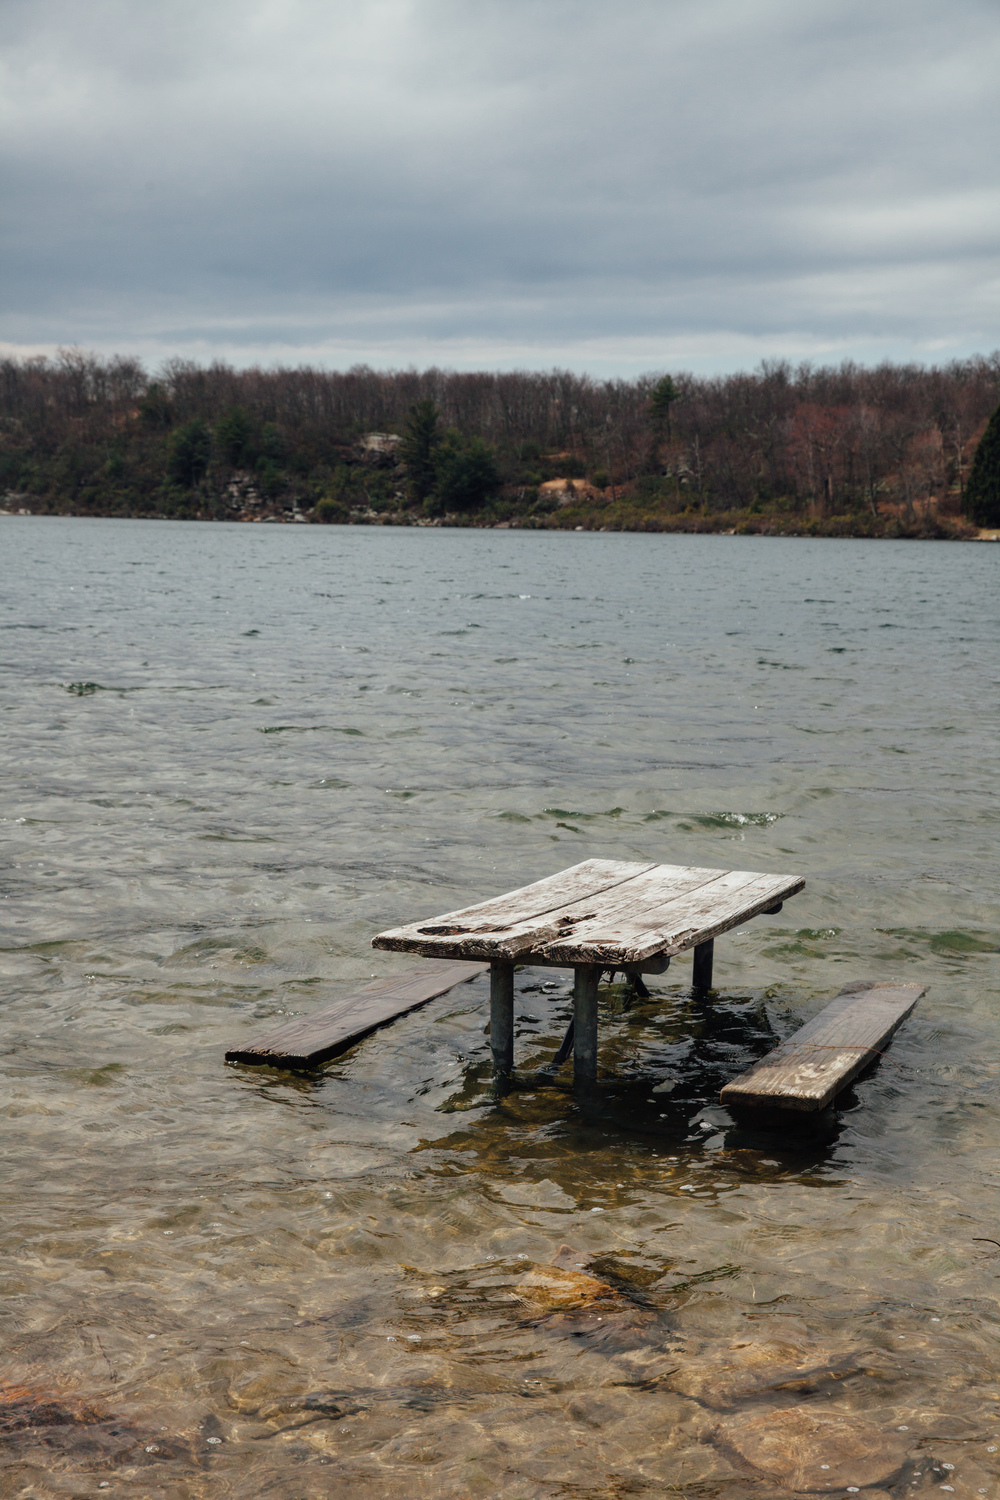 A picnic area, part of which is now in Crater Lake, New Jersey.